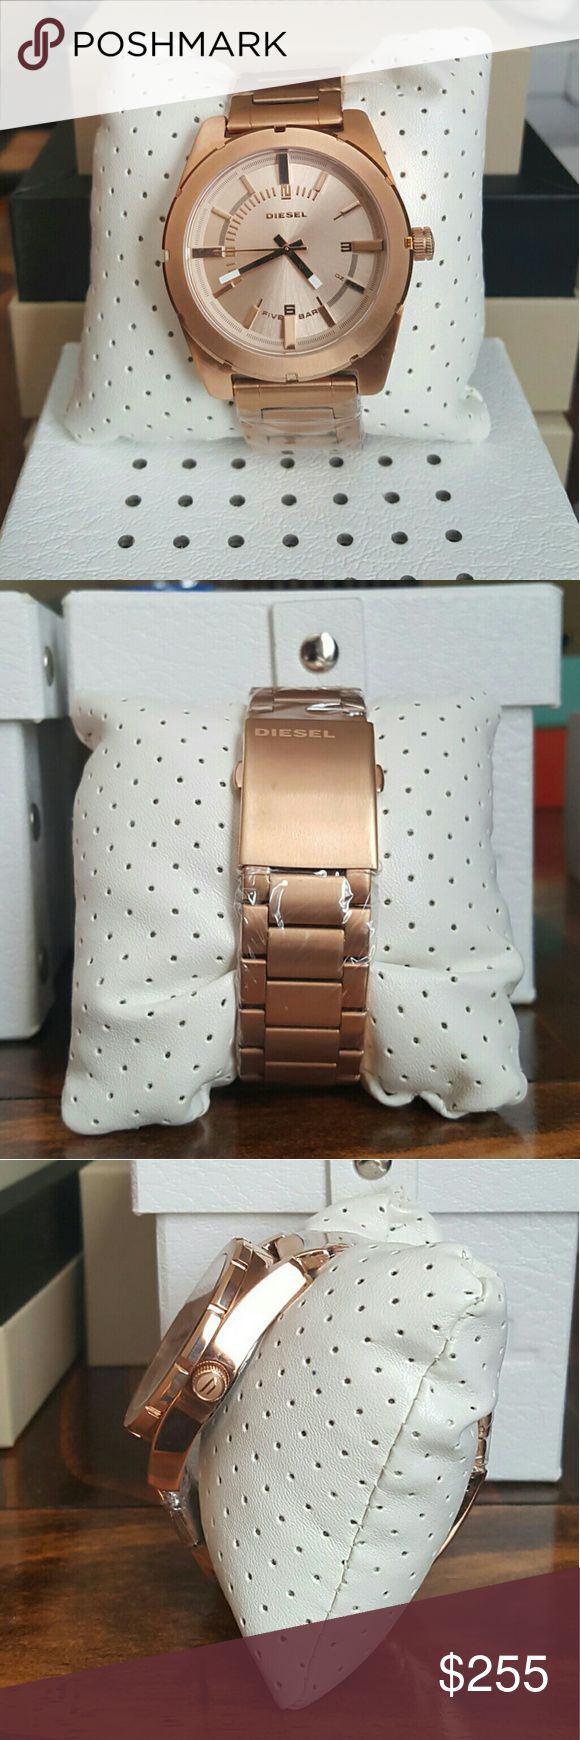 NWT Diesel ROSE Gold Tone Unisex watch NWT Diesel (UNISEX) rose gold dial stainless steel? watch  Firm Price $255.00 . AUTHENTIC WATCH . AUTHENTIC BOX . AUTHENTIC MANUAL  SHIPPING Please allow few days for me to shipped it off.i have to get it from my store.  Thank you for your understanding. diesel Accessories Watches